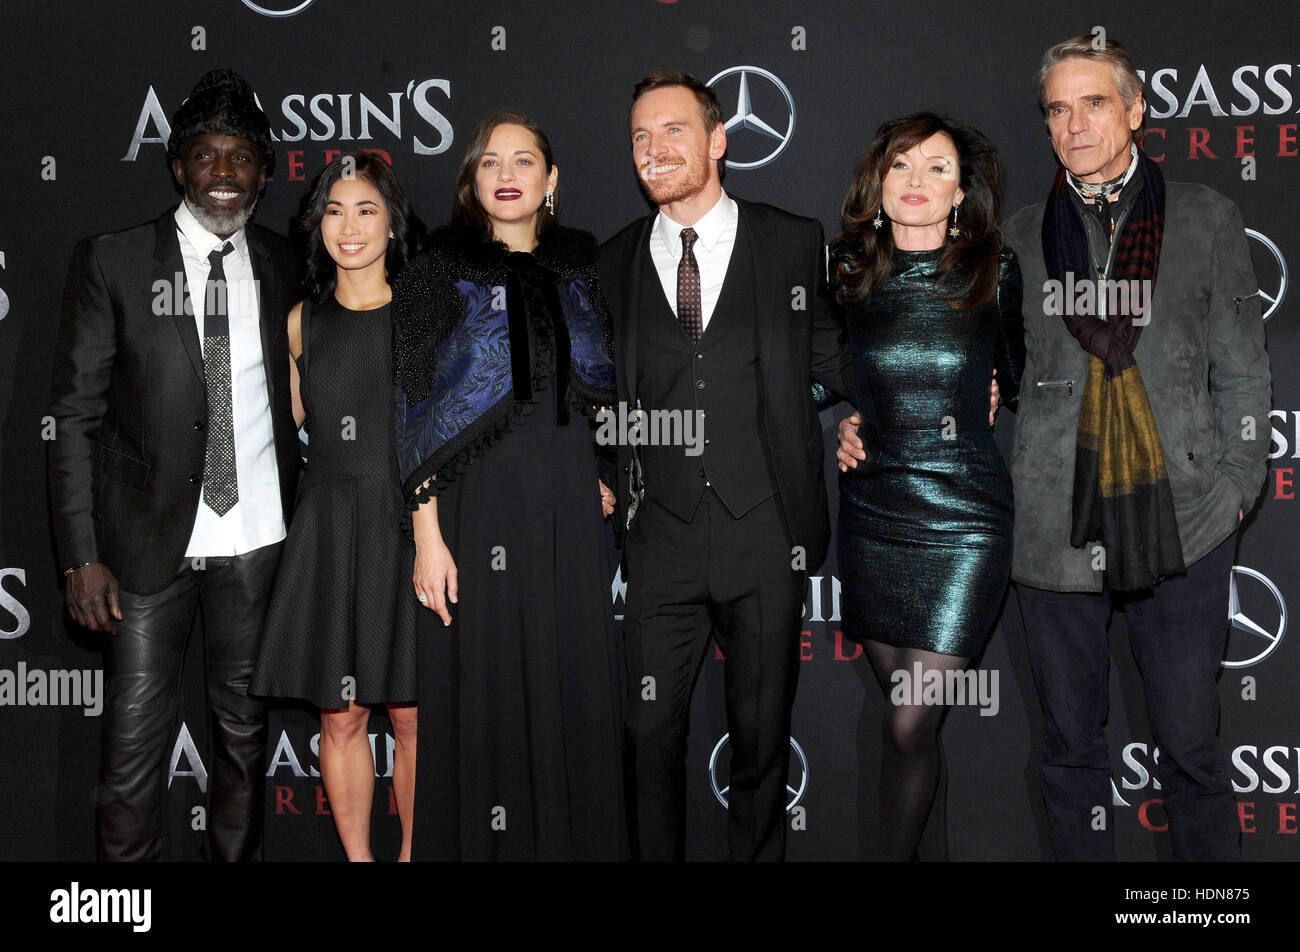 New York, USA. 13 Décembre, 2016. Michael K. Williams, Marion Cotillard, Michael Fassbender, Essie Davis et Photo Stock